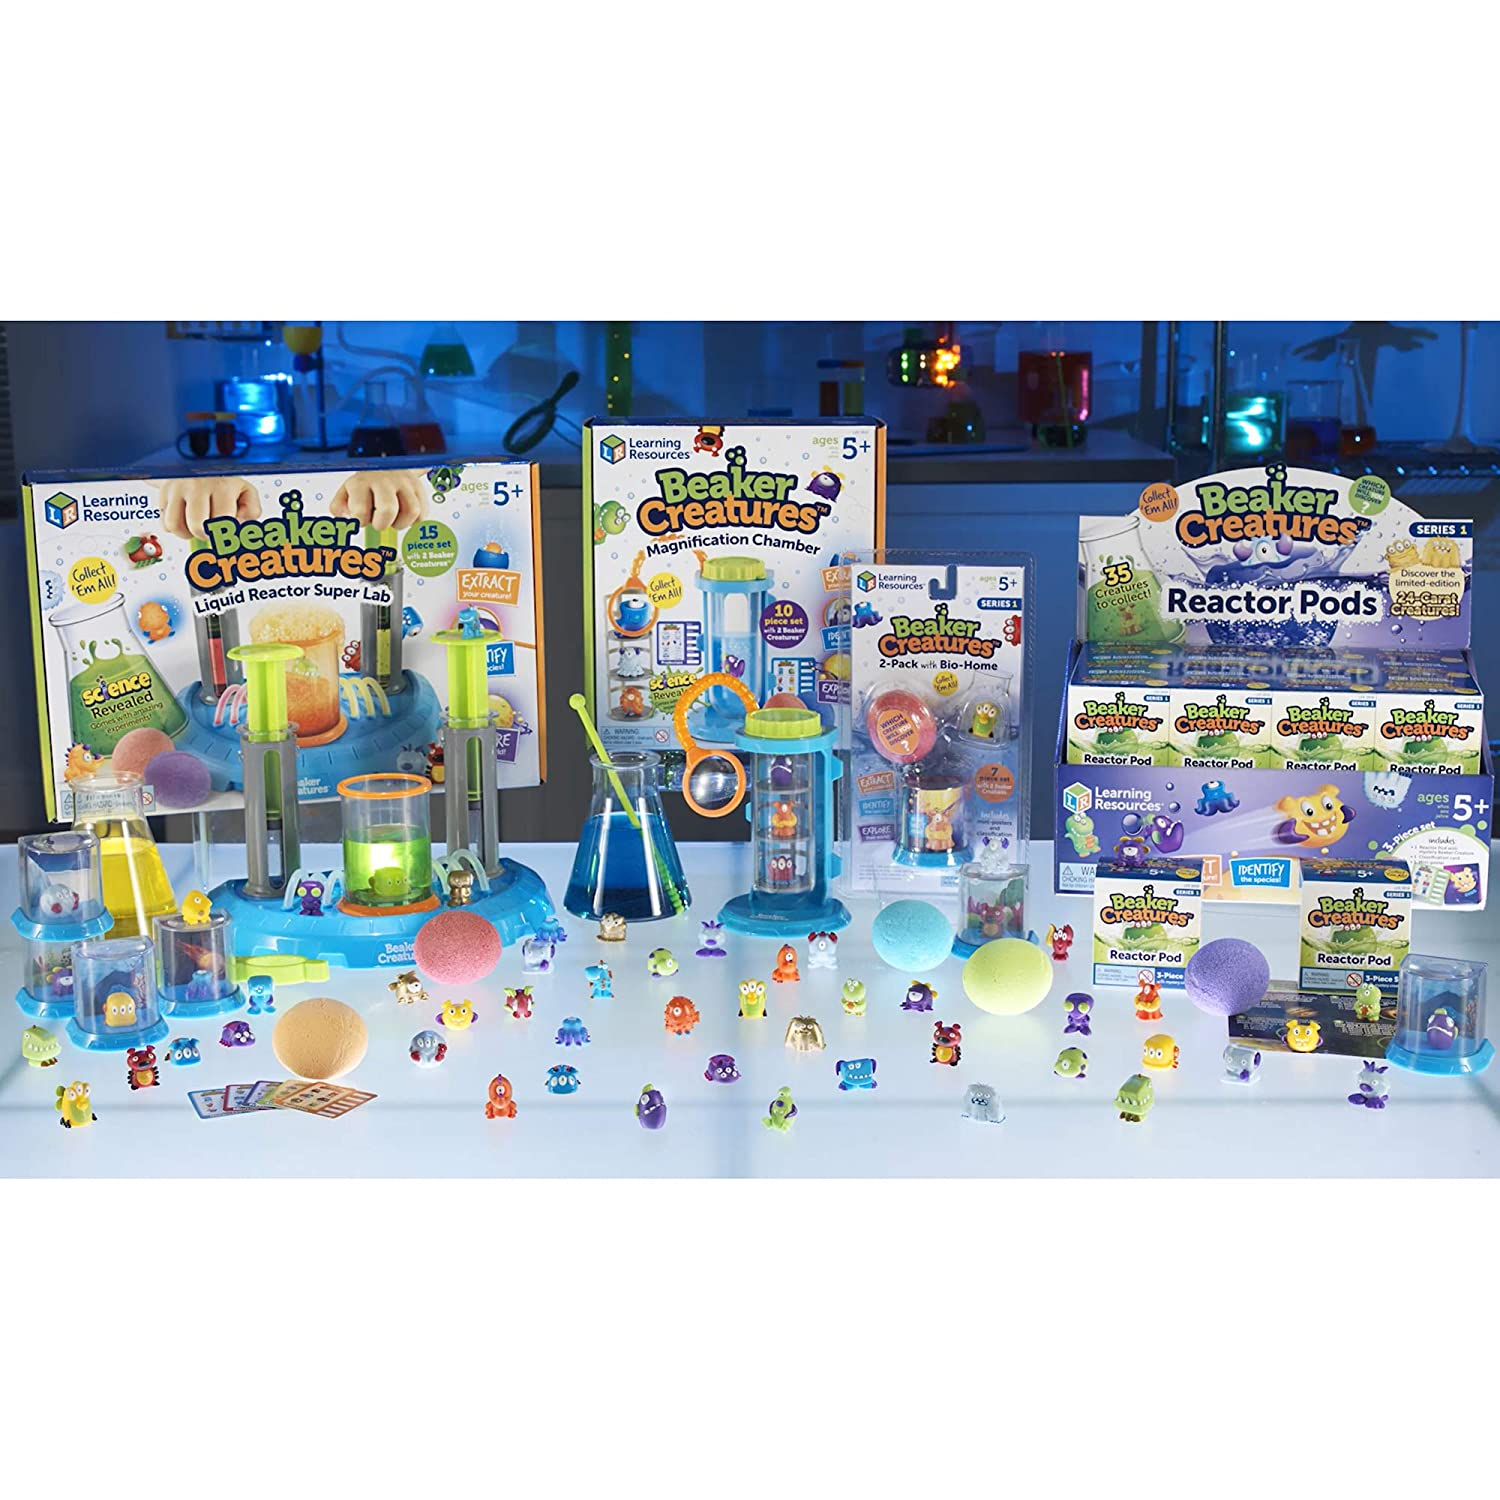 Learning Resources Beaker Creatures Reactor Pods 2 Pack LER3822